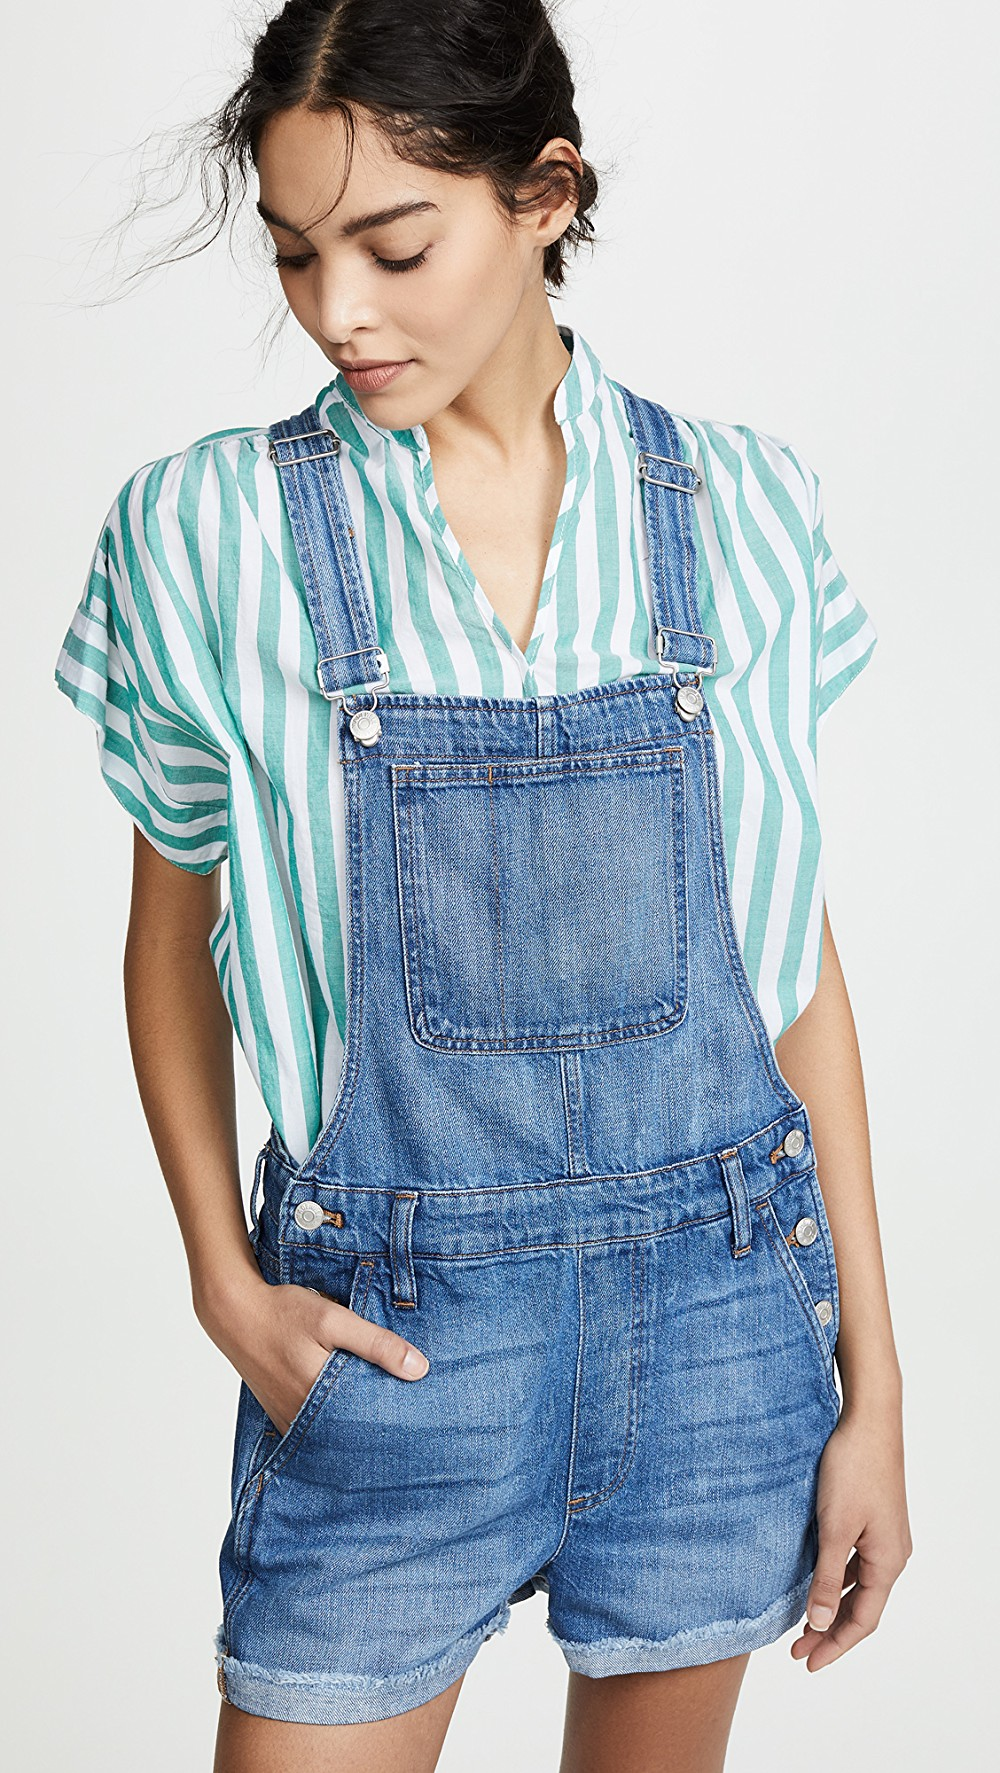 outfits with overalls